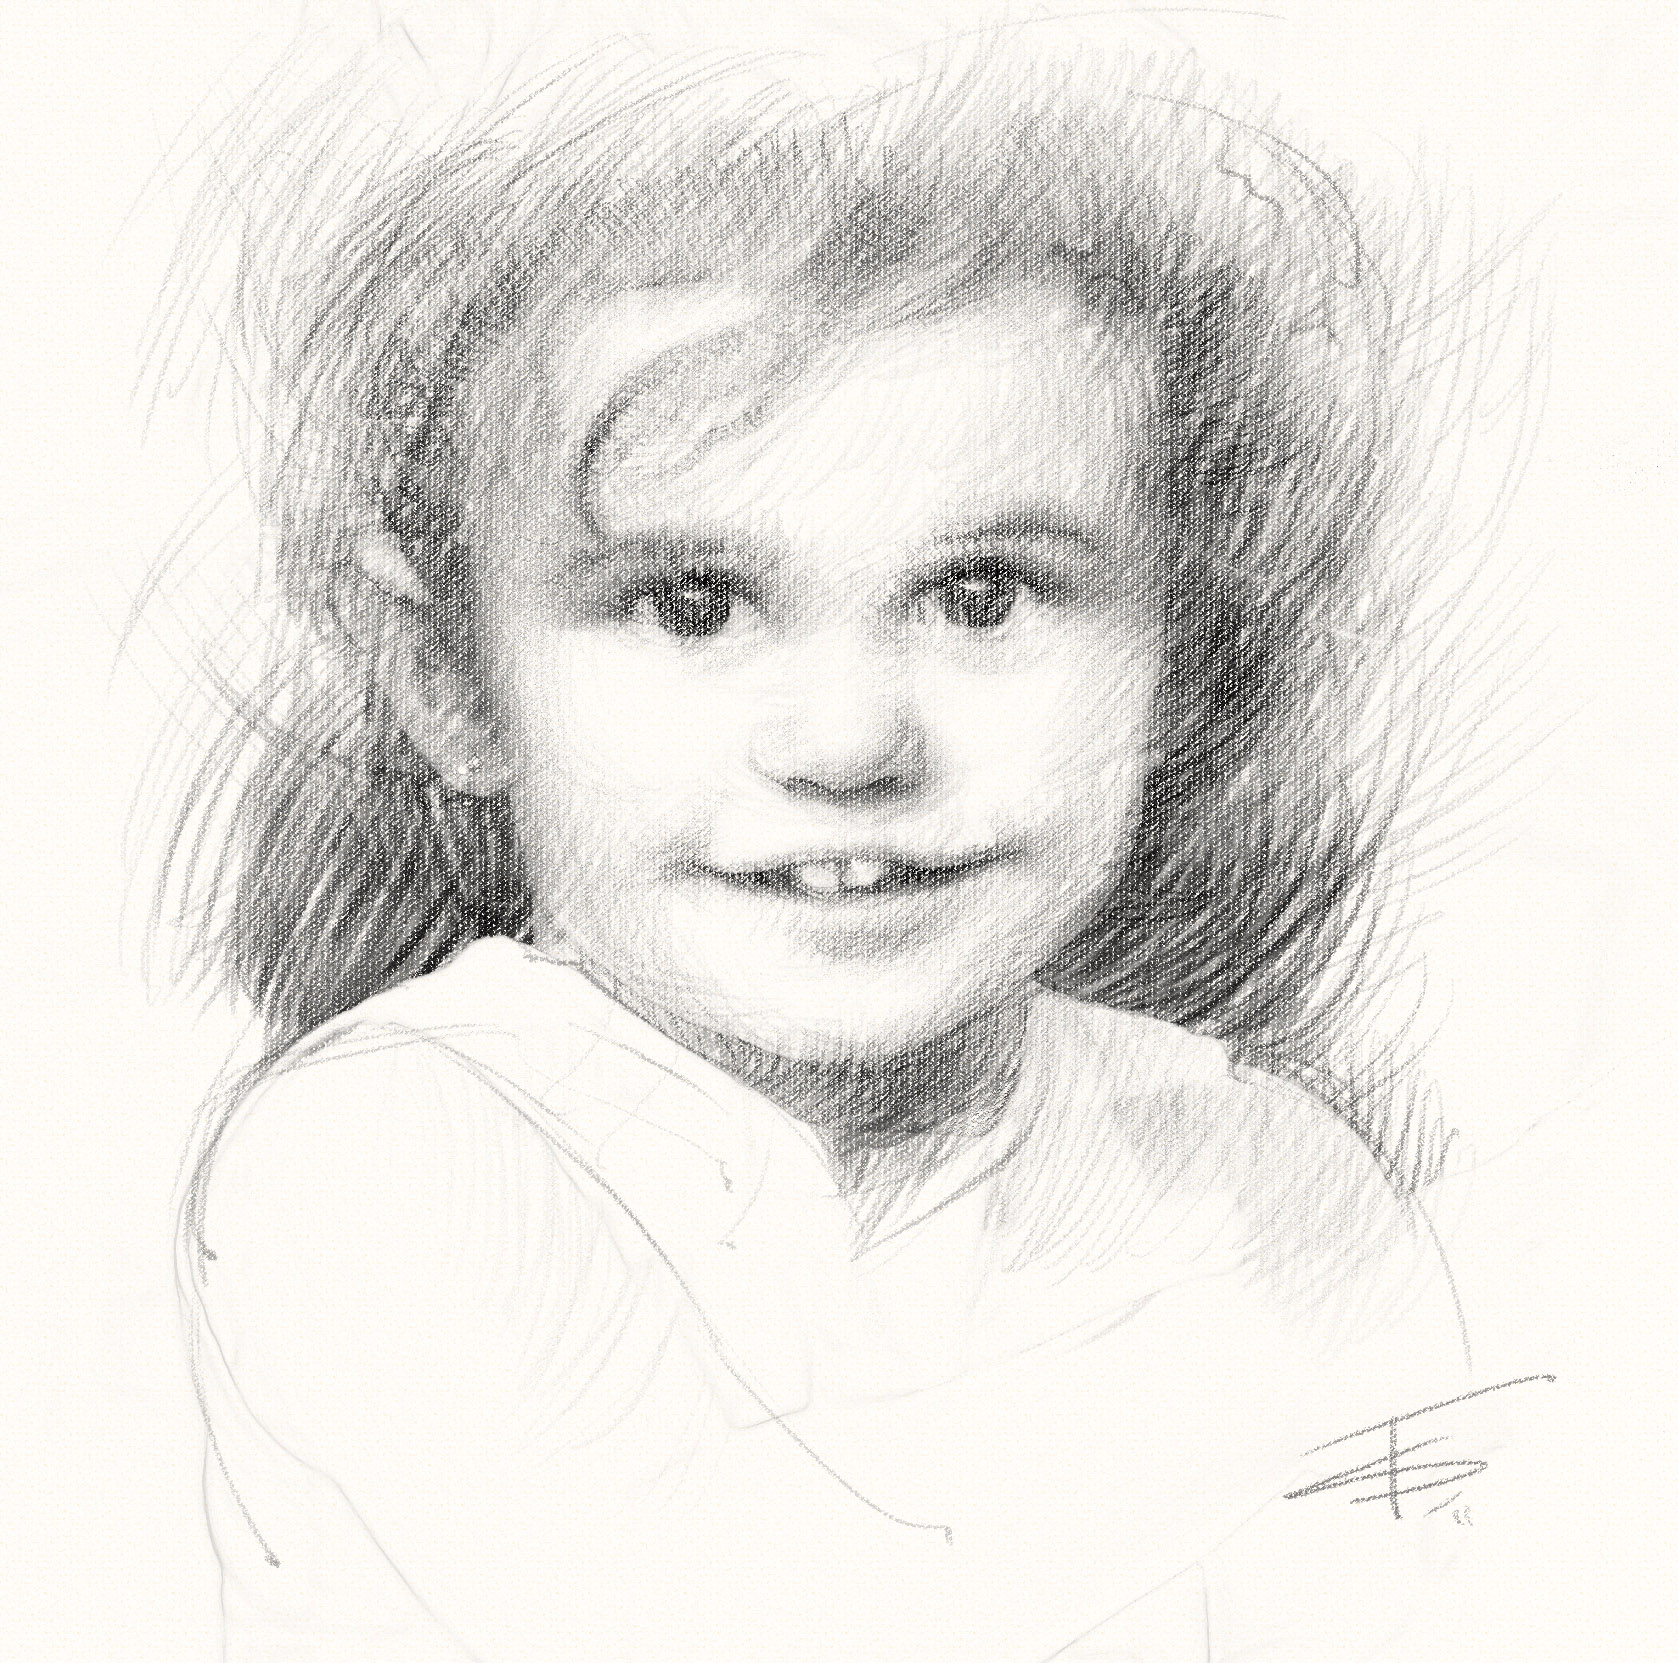 pencil_drawing_psd